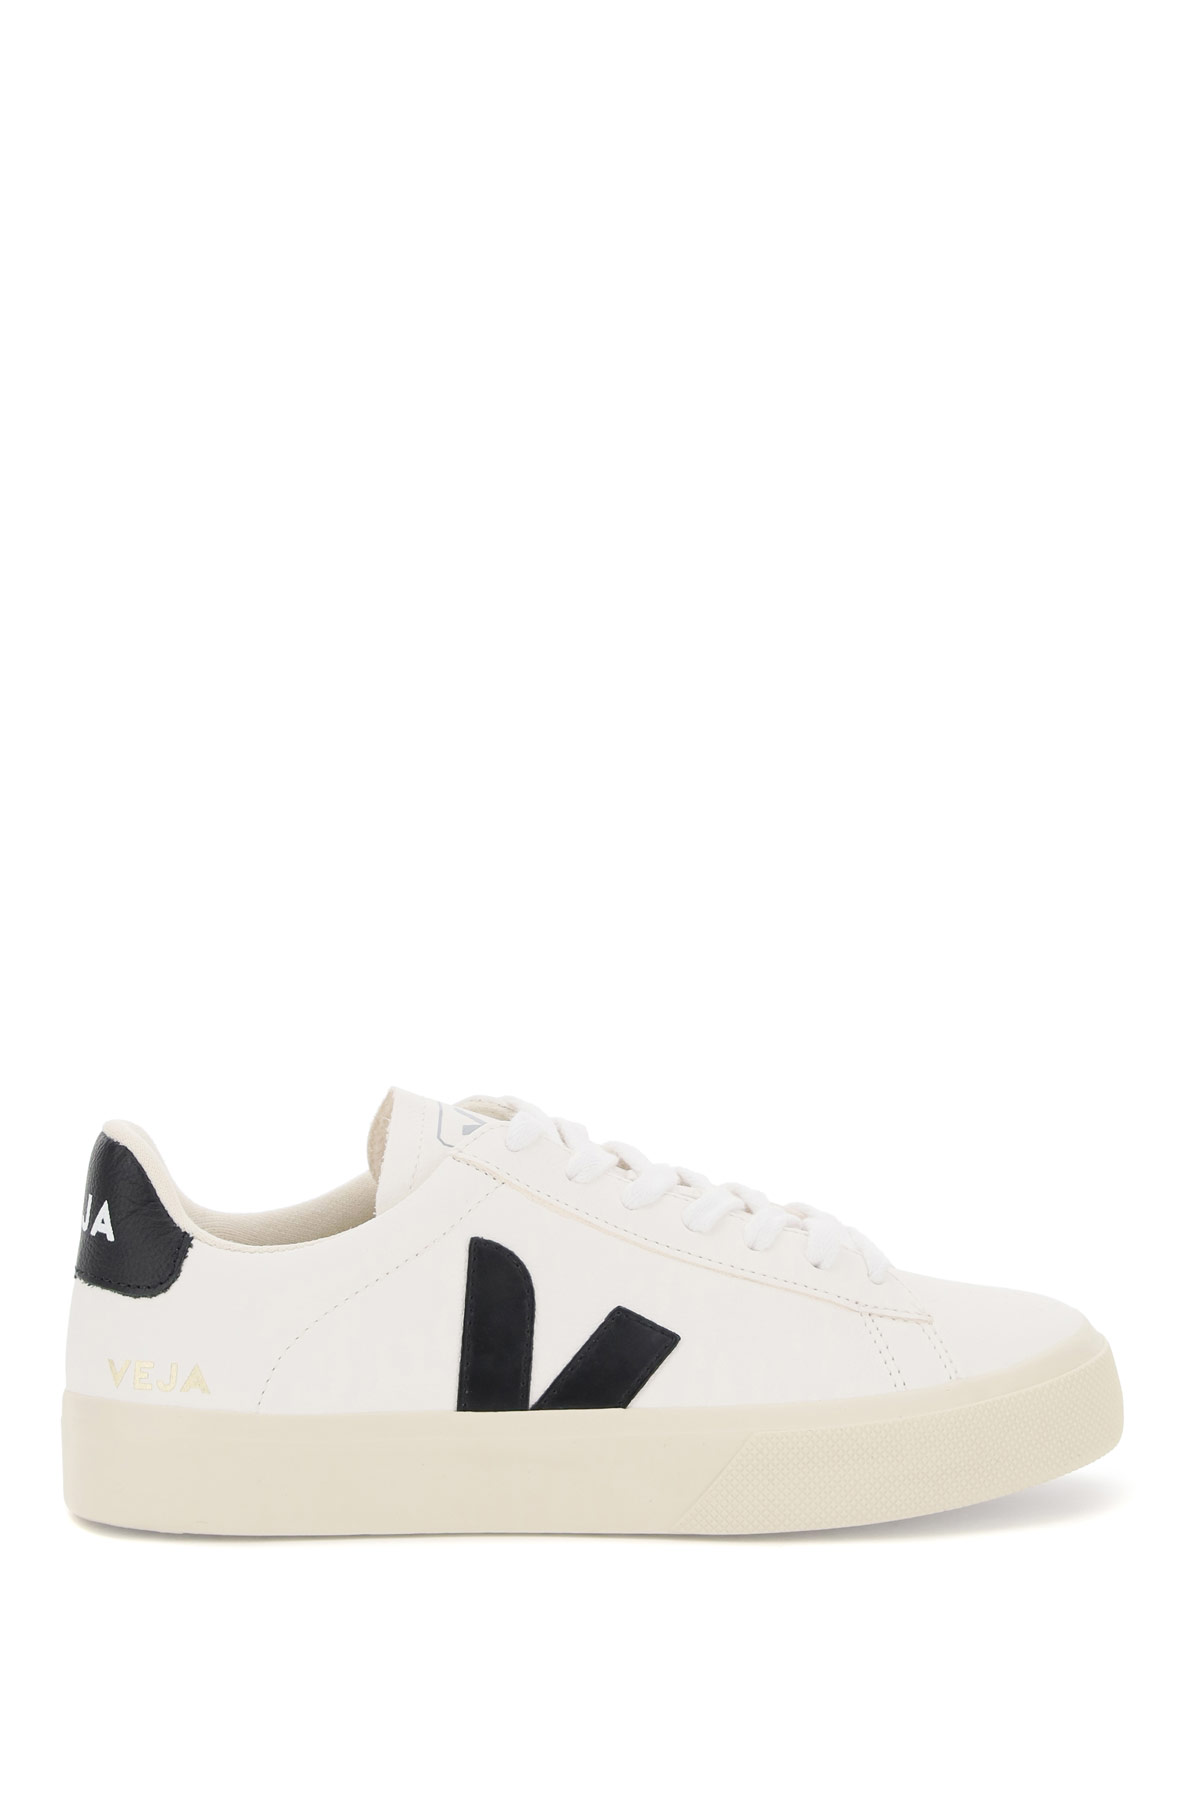 VEJA CAMPO CHROMEFREE LEATHER SNEAKERS 39 White, Black Leather